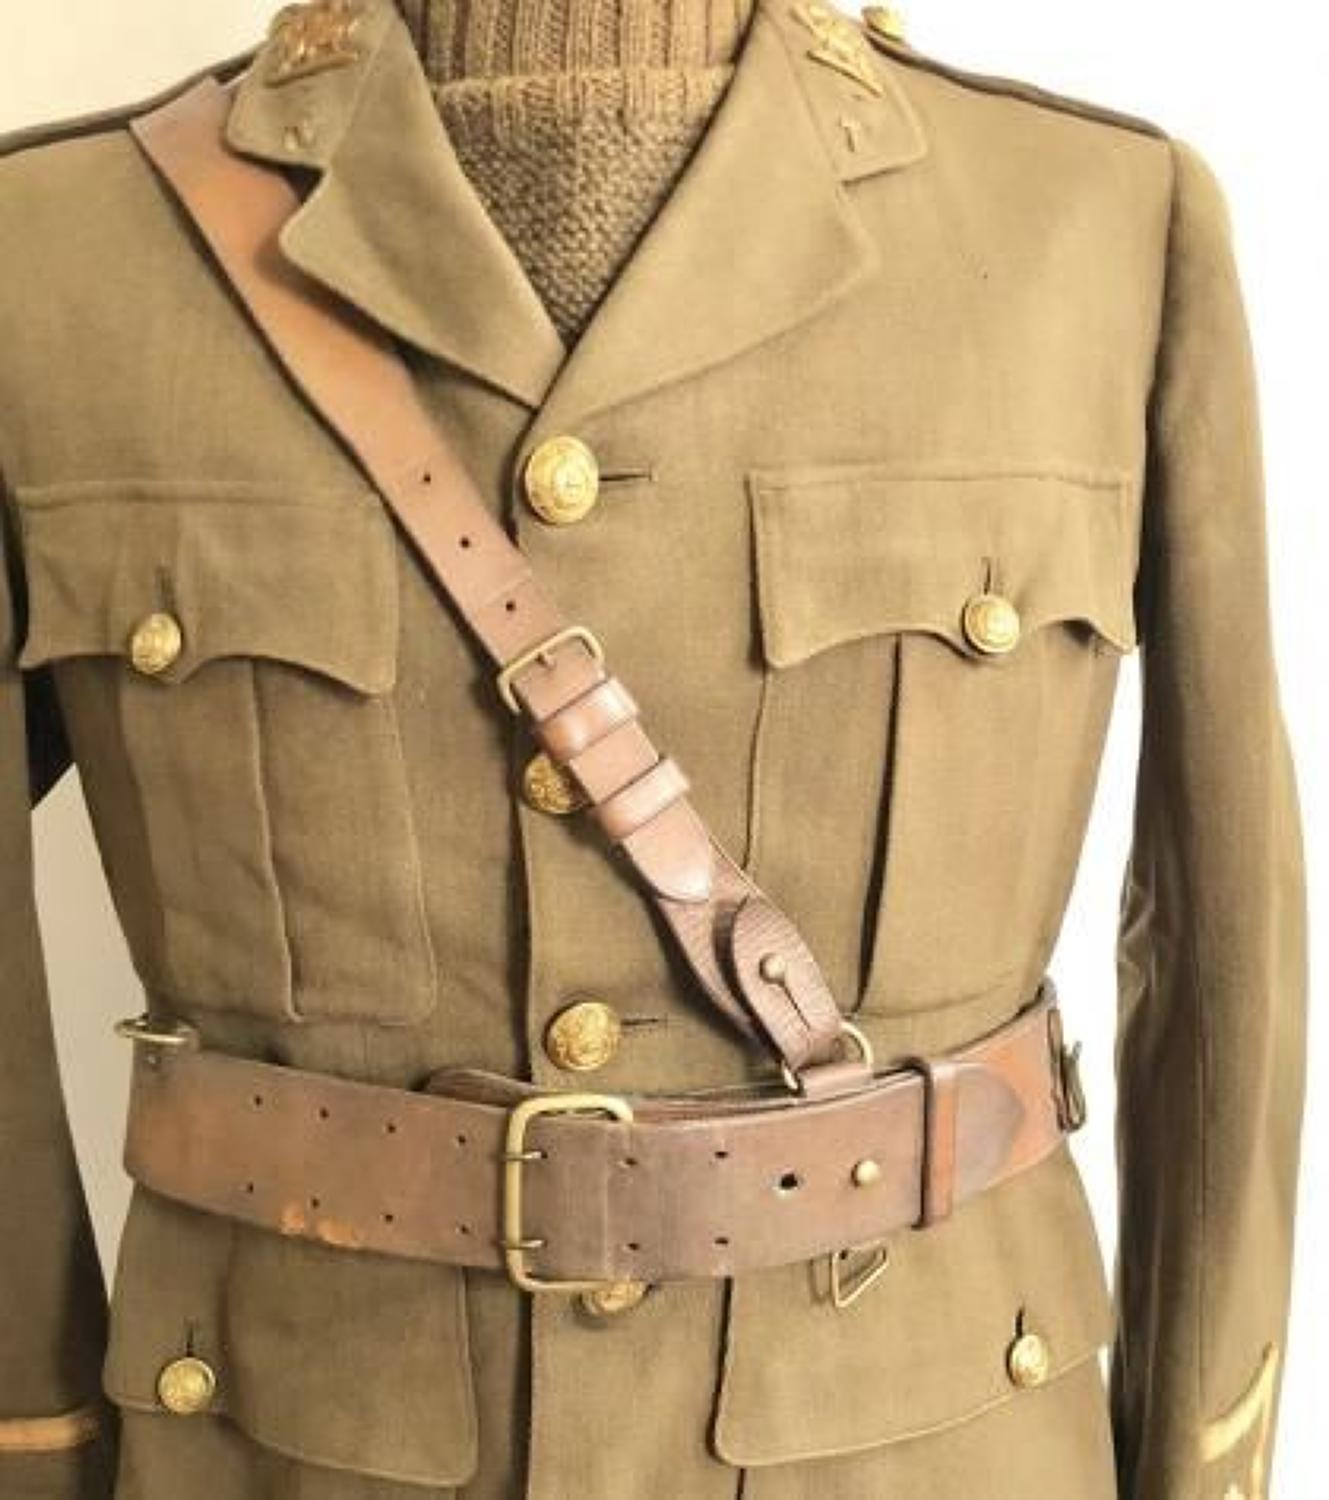 WW1 1915 British Officer's Sam Brown Belt.